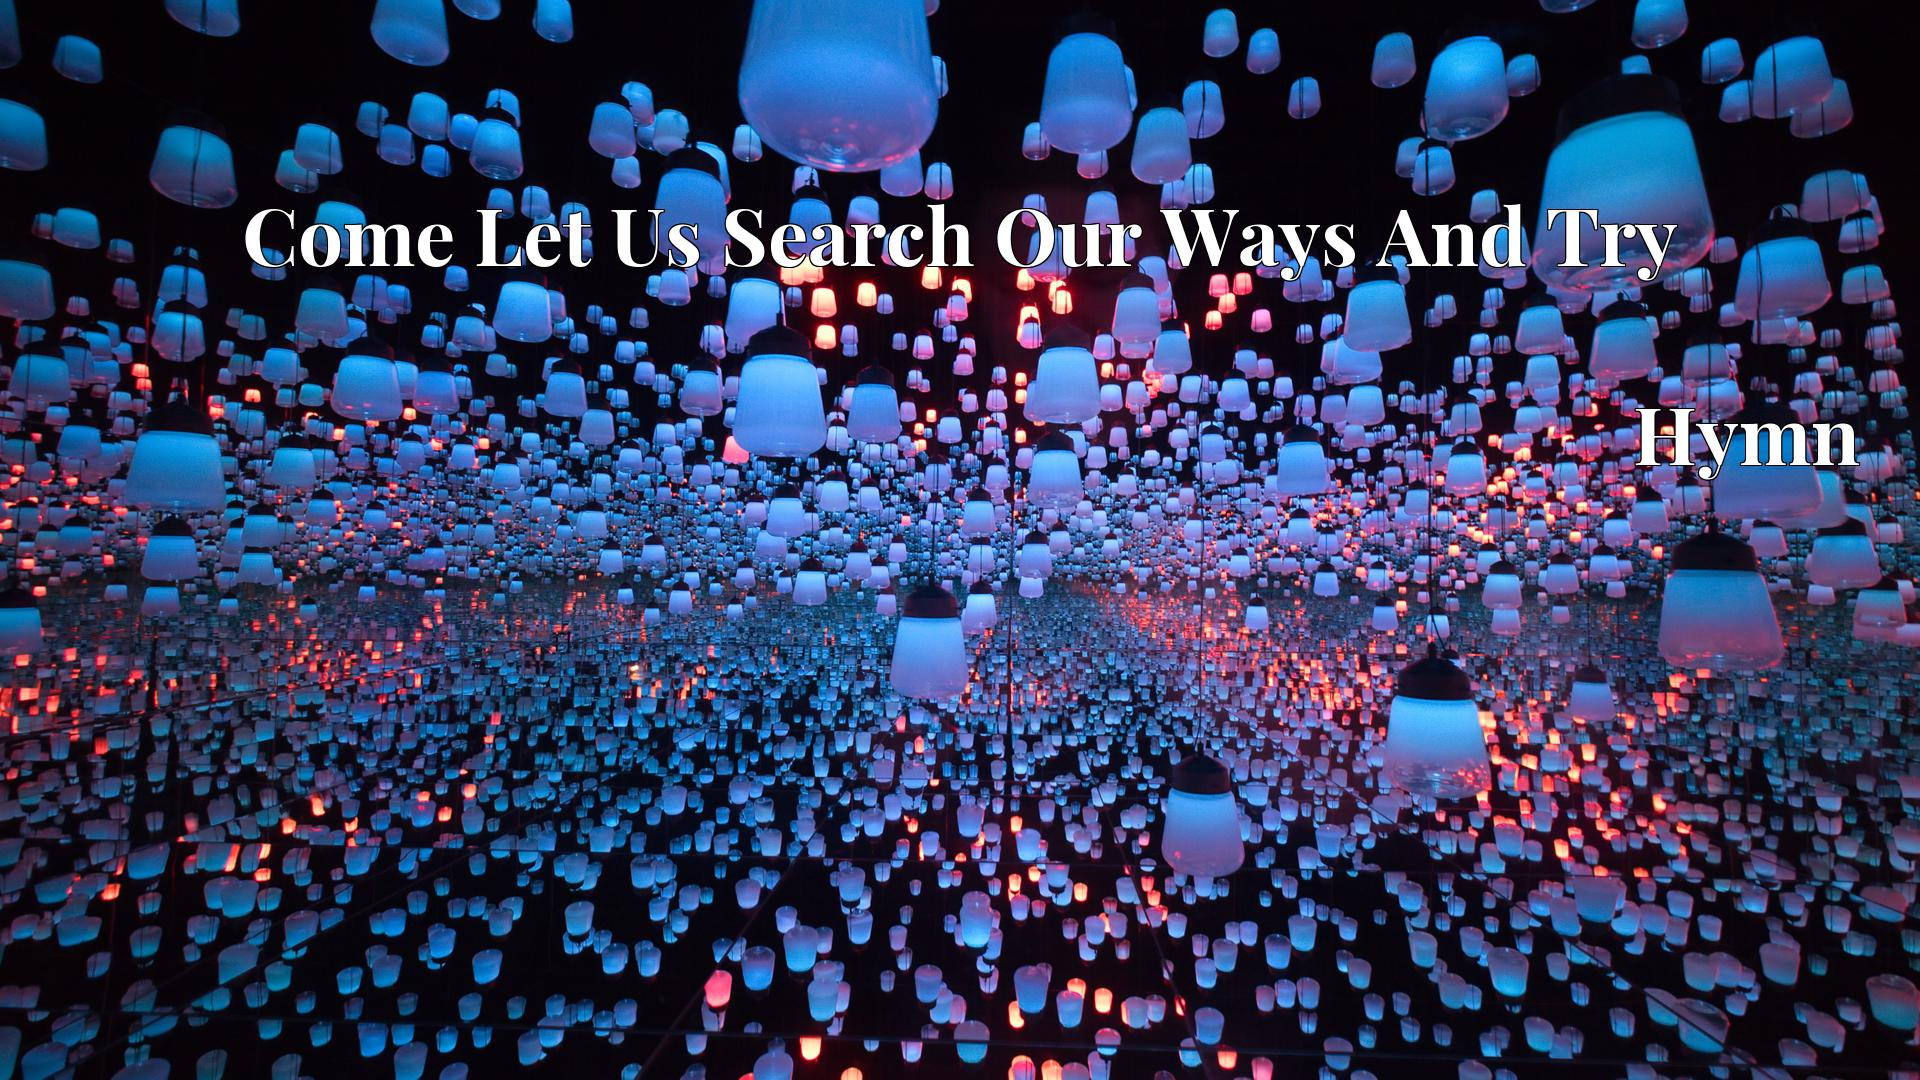 Come Let Us Search Our Ways And Try - Hymn